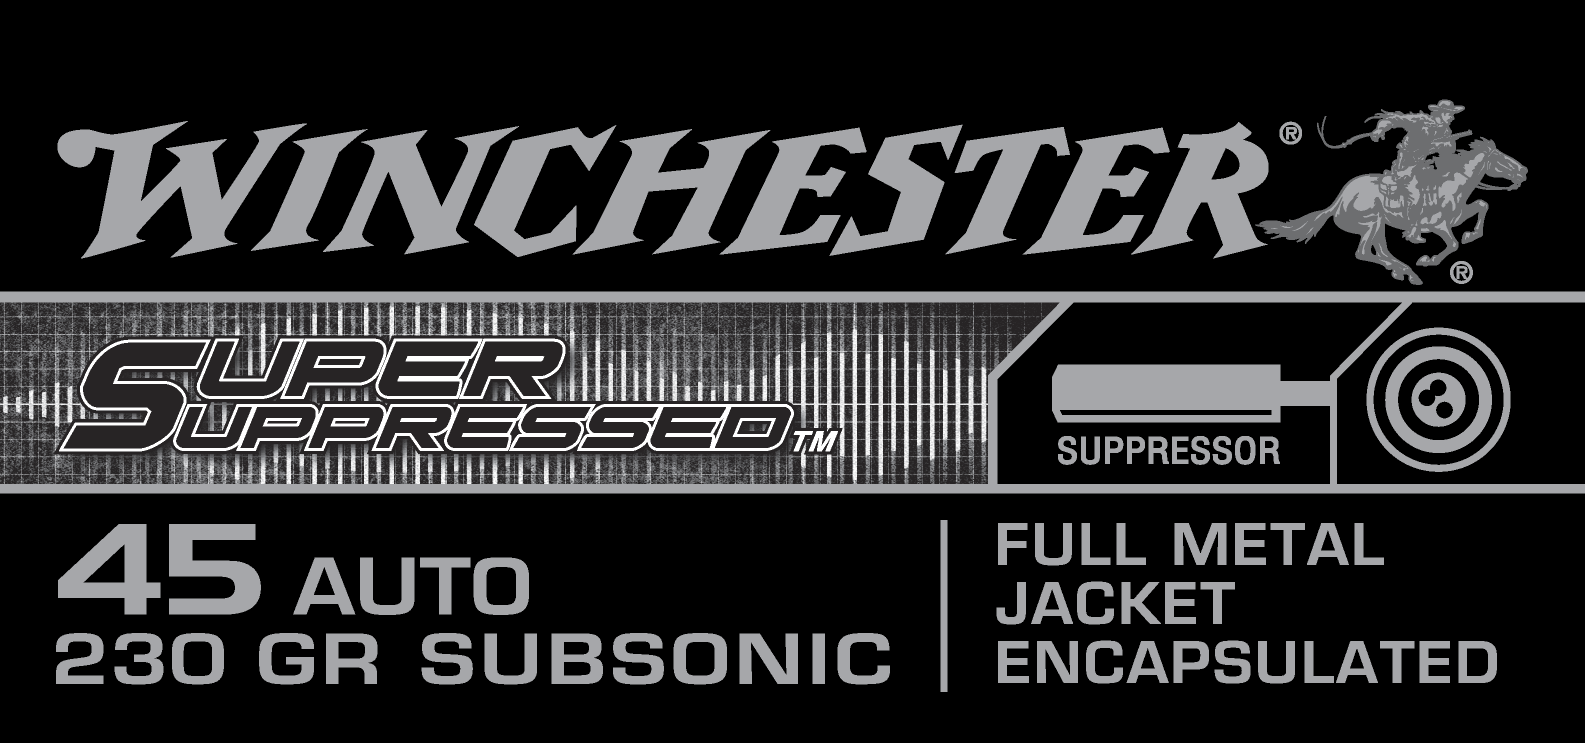 Winchester Super Suppressed Ammunition 45 Auto (ACP) 230 Grain Full Metal Jacket Per 50